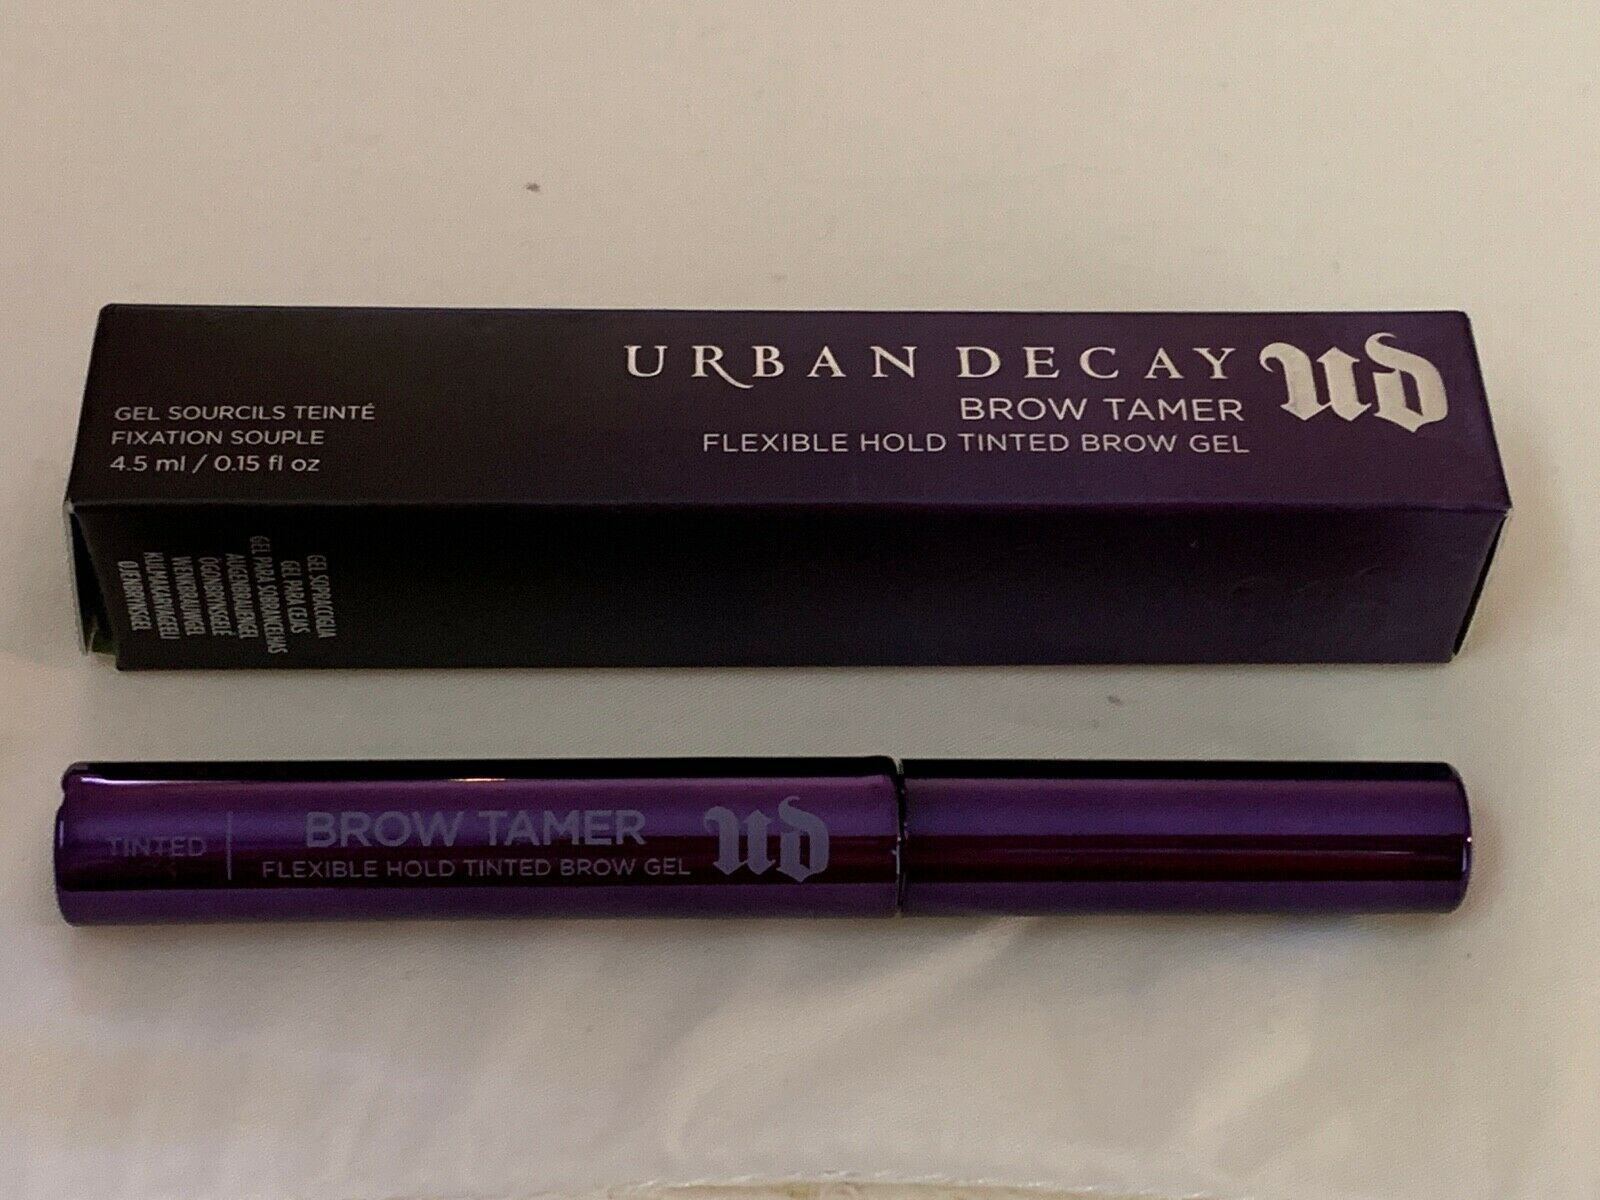 NWB Urban Decay Brow Tamer Tinted Brow Gel in Taupe 0.15 fl oz - $15.00